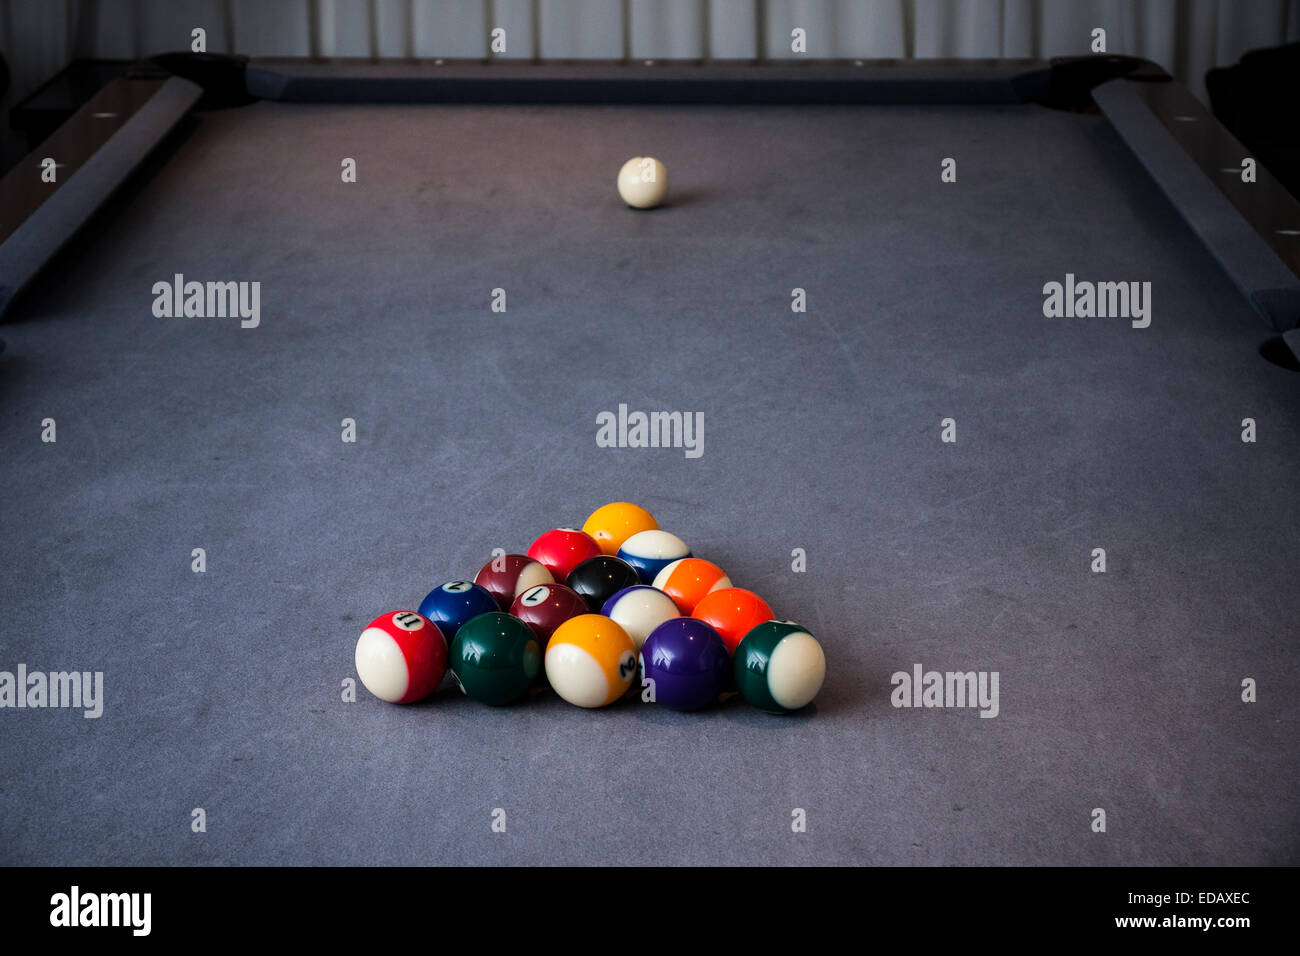 Pool Table Setup >> Pool Table Setup Stock Photo 77072308 Alamy